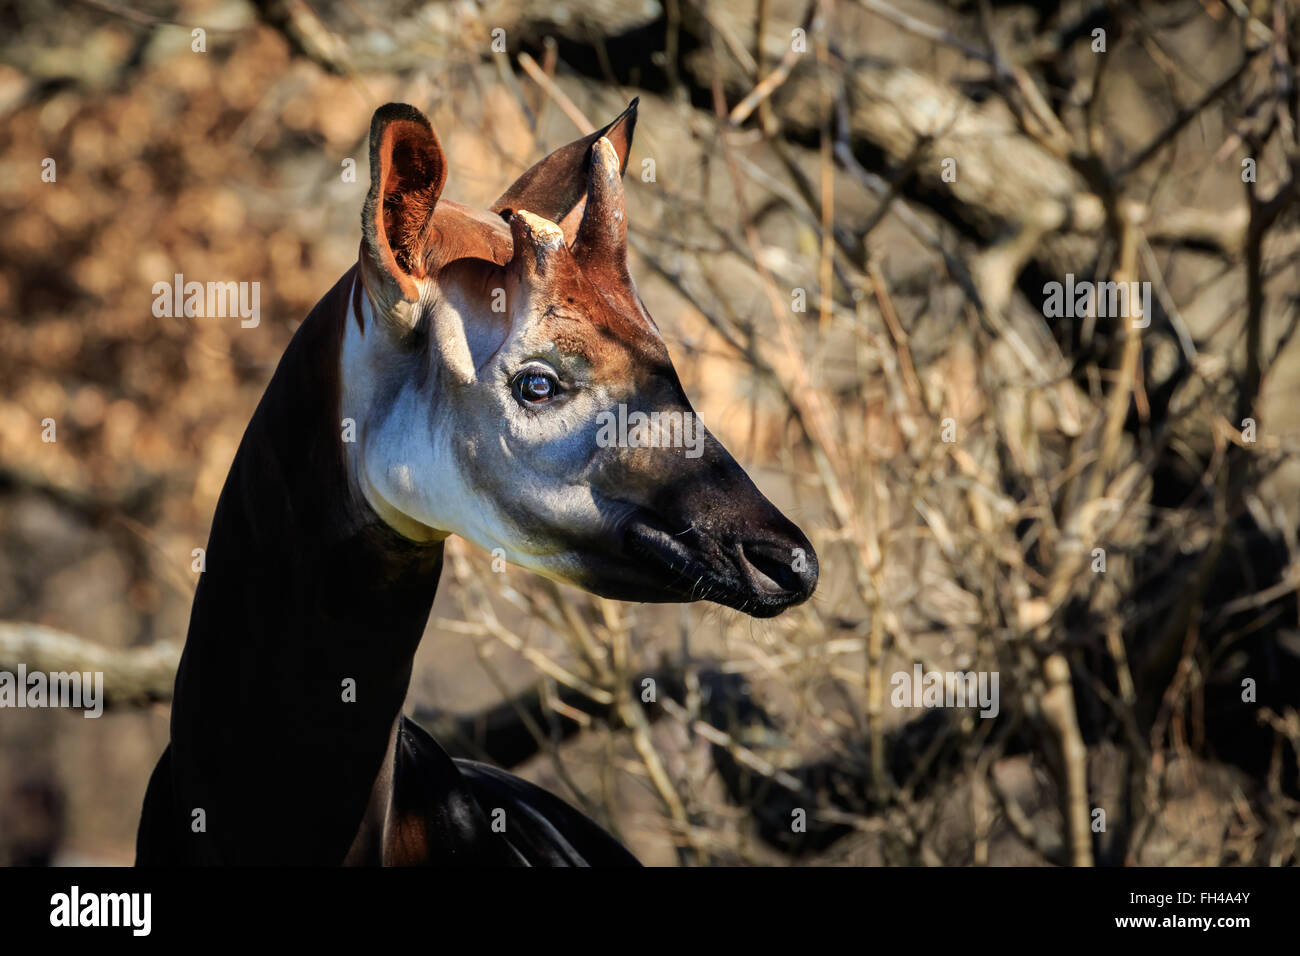 The elusive Okapi shows it's odd beauty for the camera - Stock Image